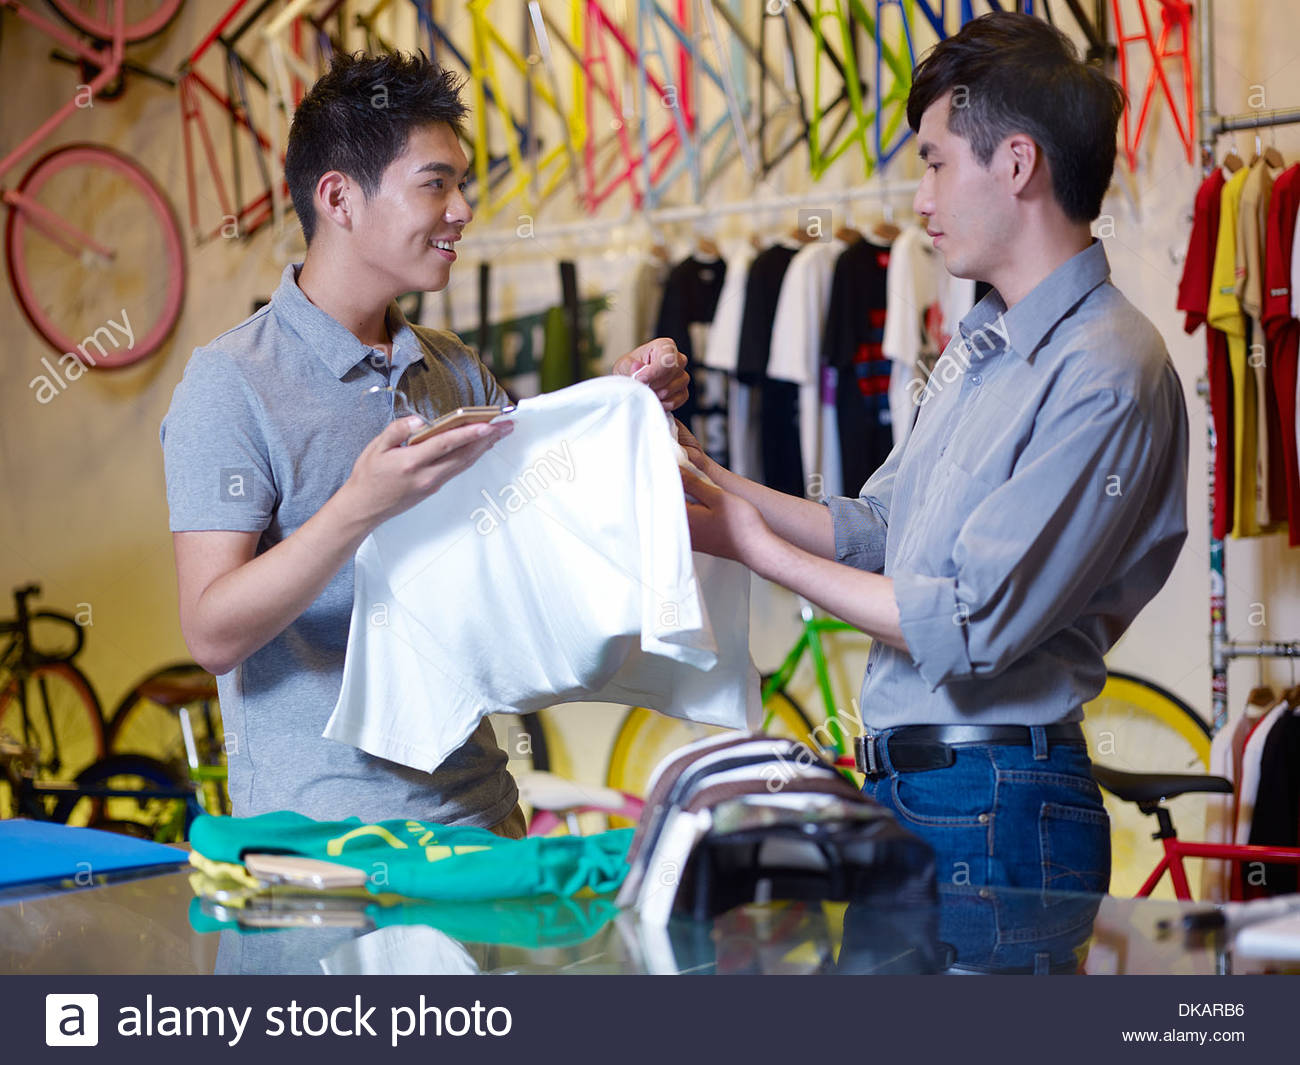 Two young men looking at t shirts in bike shop - Stock Image